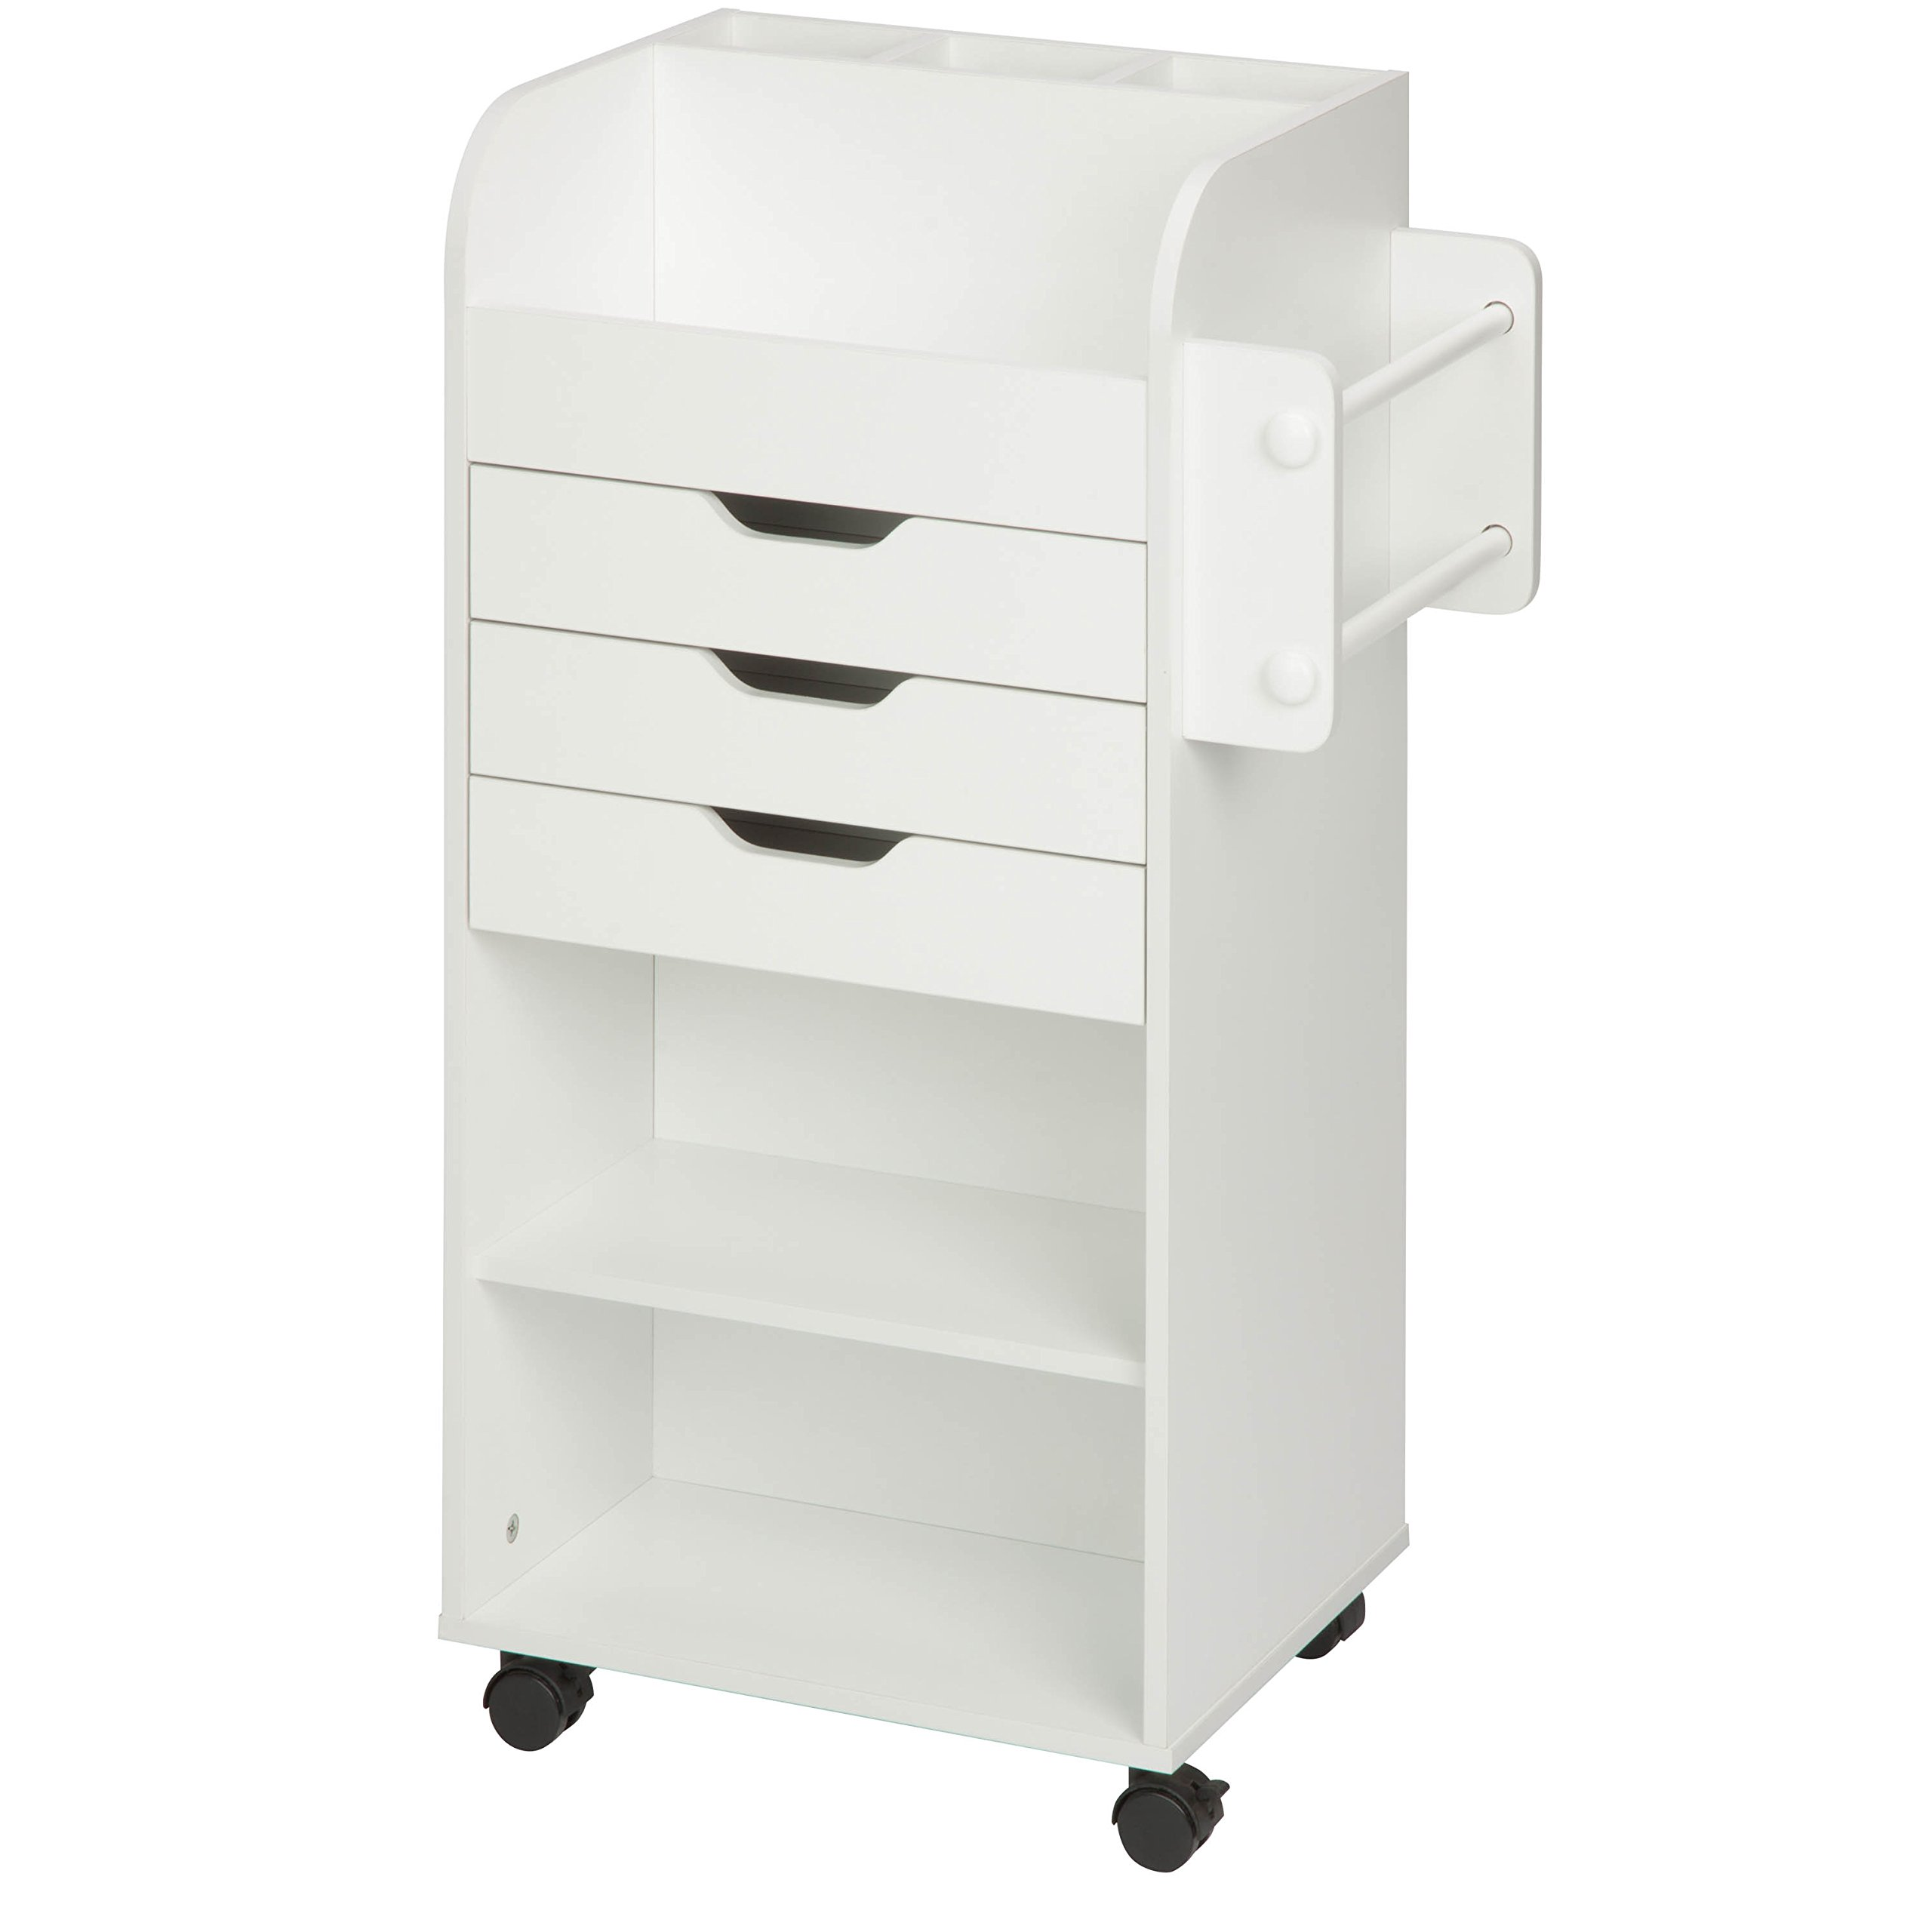 Honey-Can-Do CRT-06346 Rolling Craft Storage Cart with 3-Drawers, White, 19.13L x 33.62H, 19.13'' x 33.62'', by Honey-Can-Do